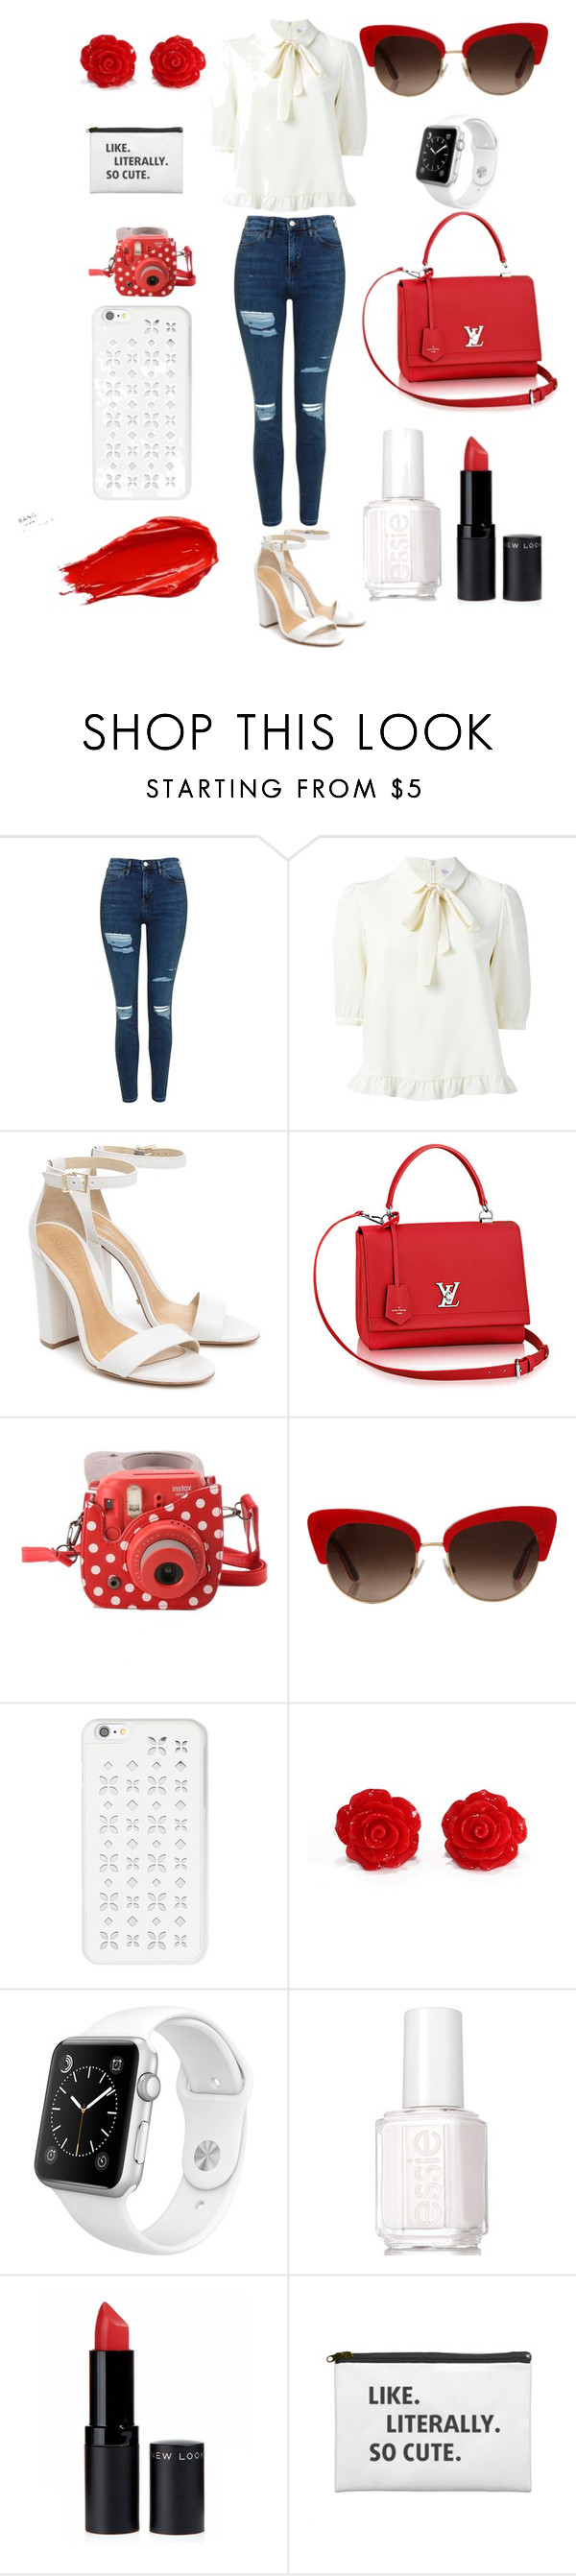 """Sans titre #5"" by paulinethevenin ❤ liked on Polyvore featuring Topshop, Schutz, Fujifilm, Dolce&Gabbana, MICHAEL Michael Kors, Apple, Urban Decay, Essie and New Look"